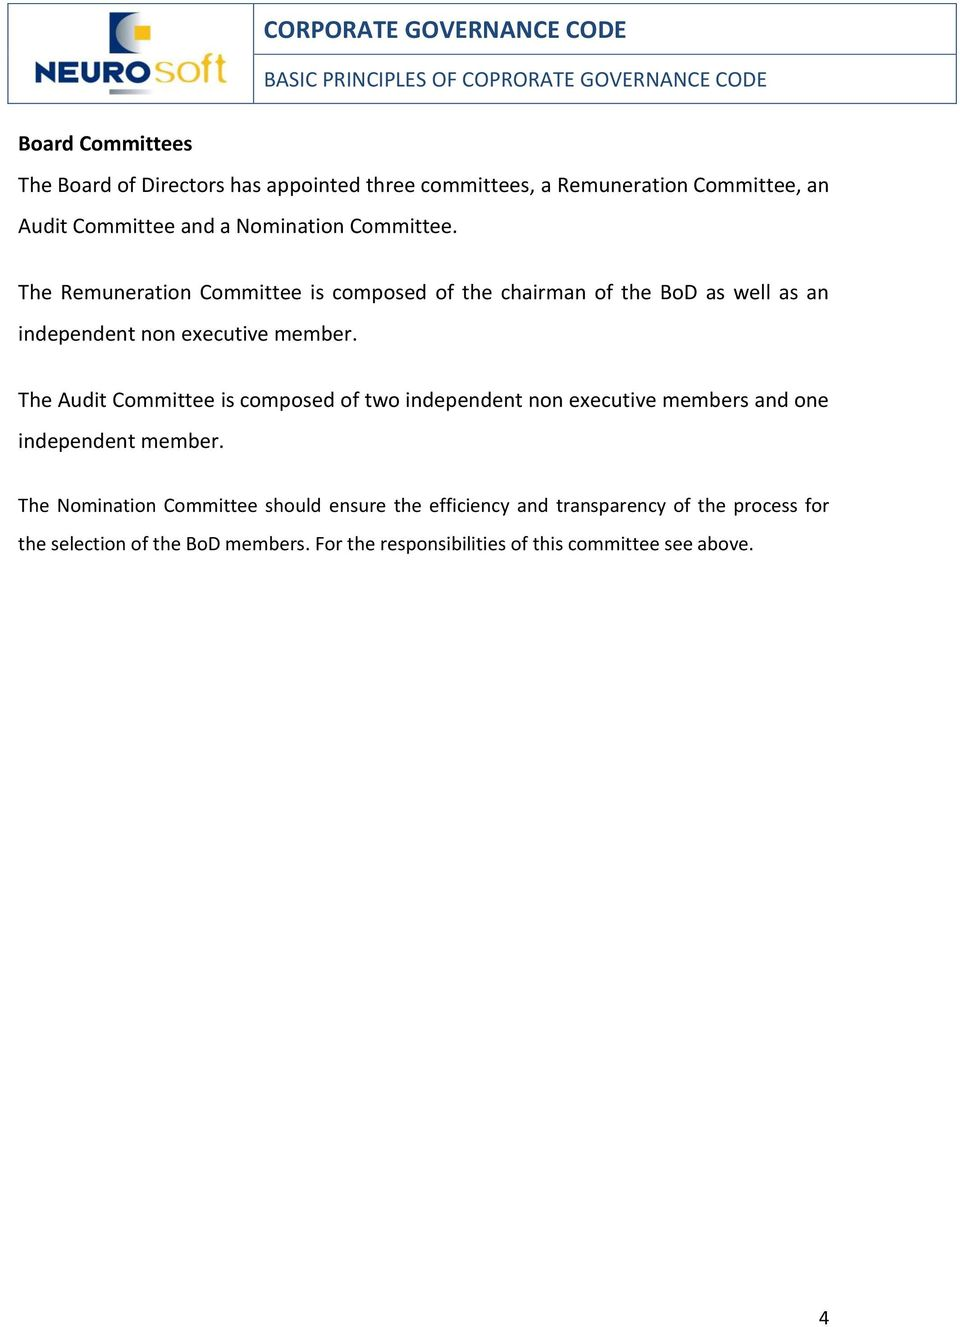 The Audit Committee is composed of two independent non executive members and one independent member.